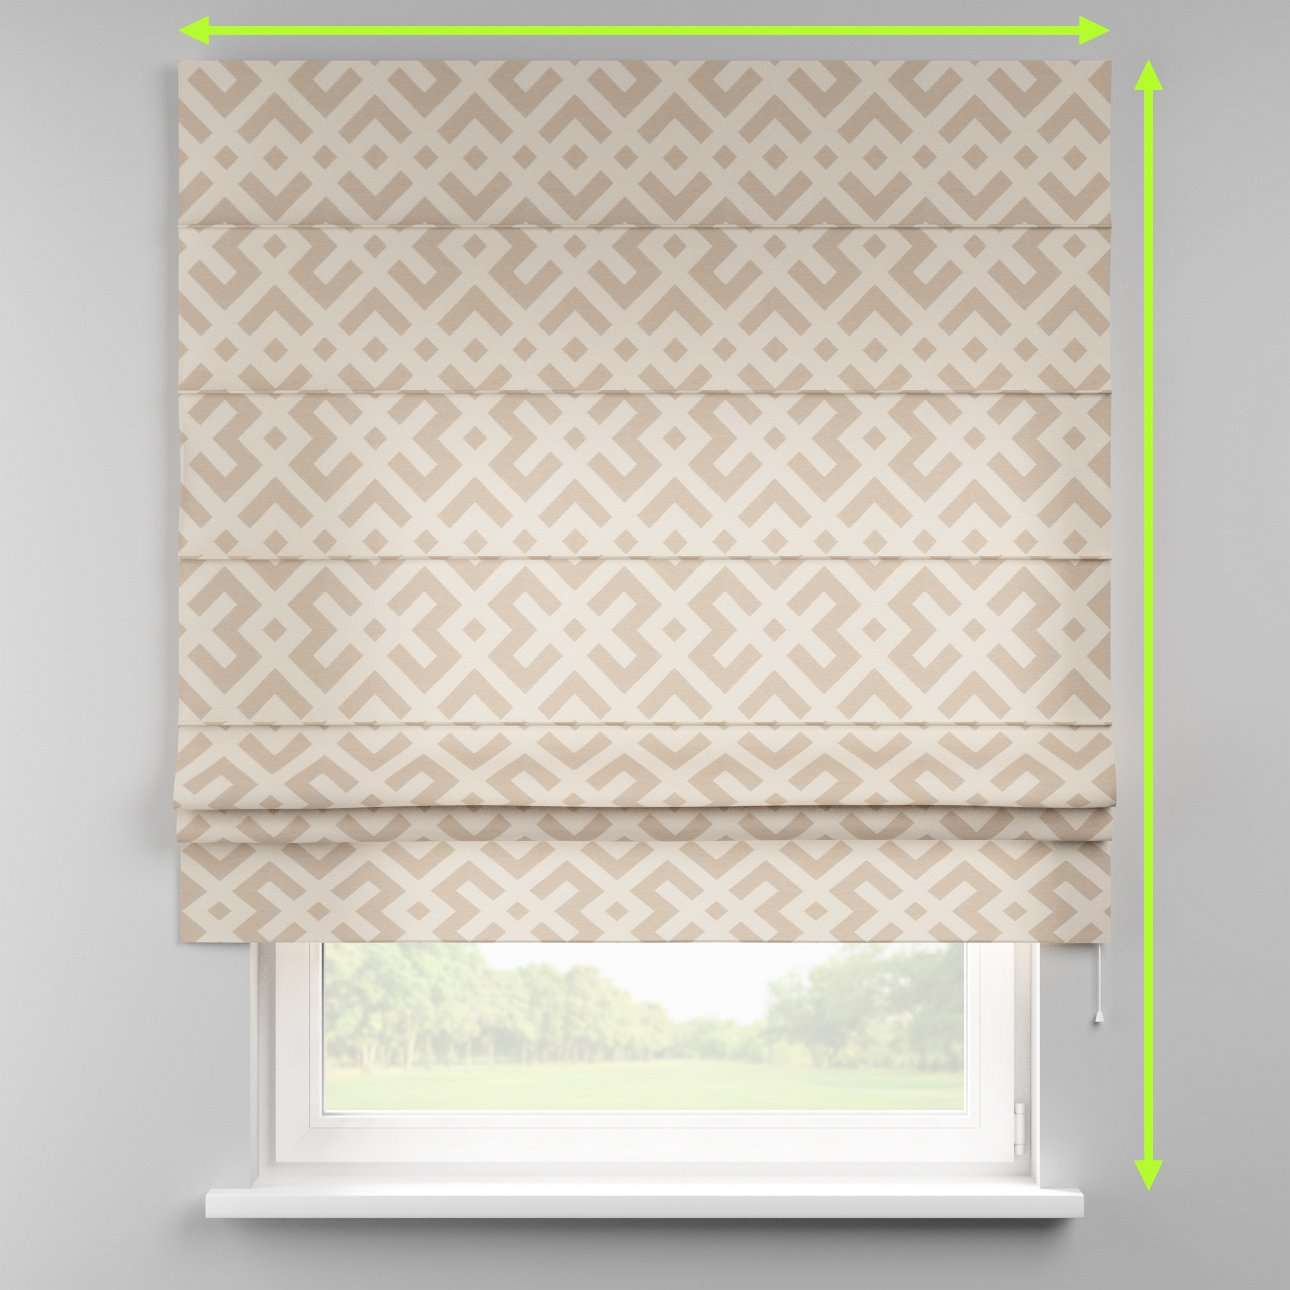 Padva roman blind  in collection Rustica, fabric: 140-59